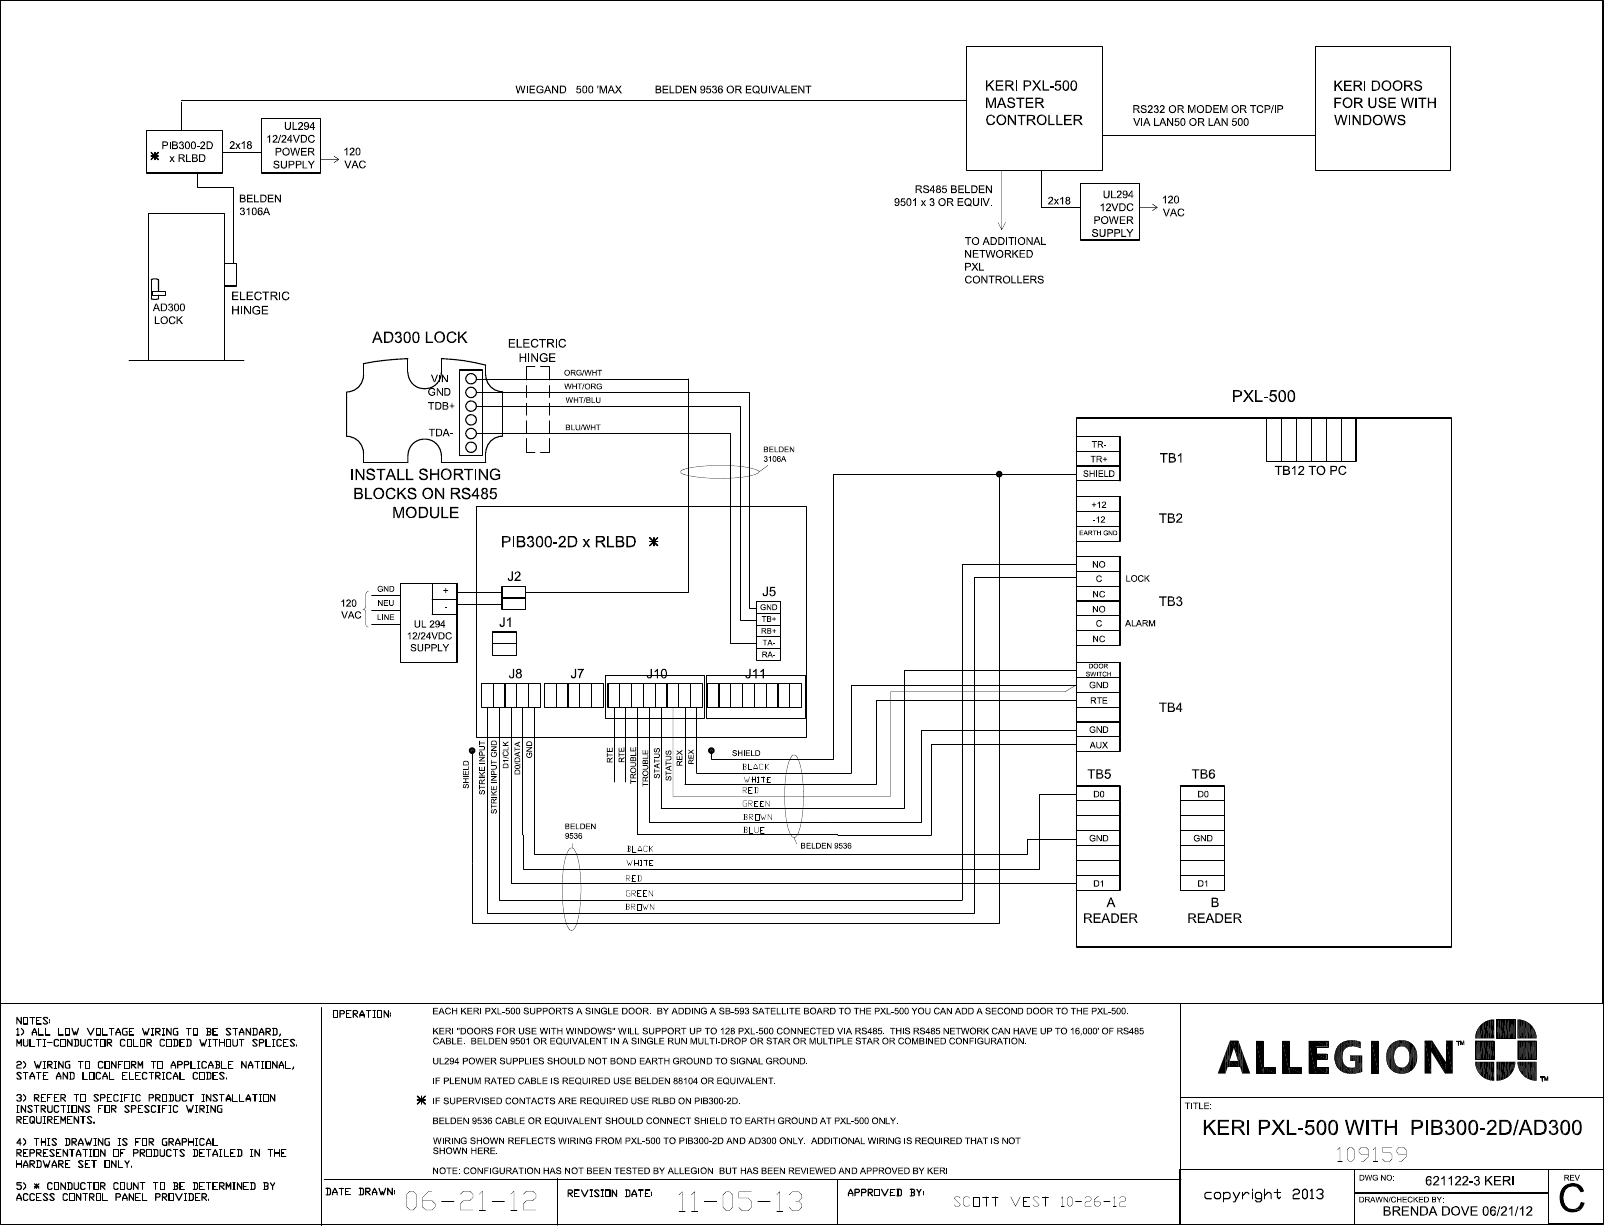 Securitron Maglock Wiring Diagram Schlage A Diagrams Electronics C Ad 400 Pim400 485 With Keri Rh Smdqueen Co M450 Locknetics M490